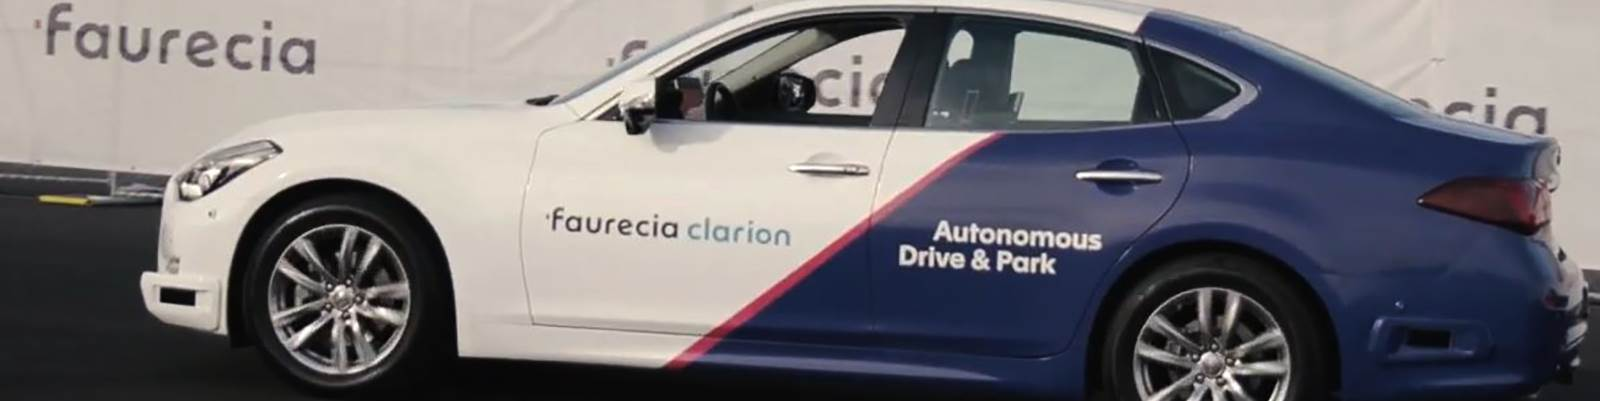 Faurecia's valet technology allows users to remotely park and summon their cars